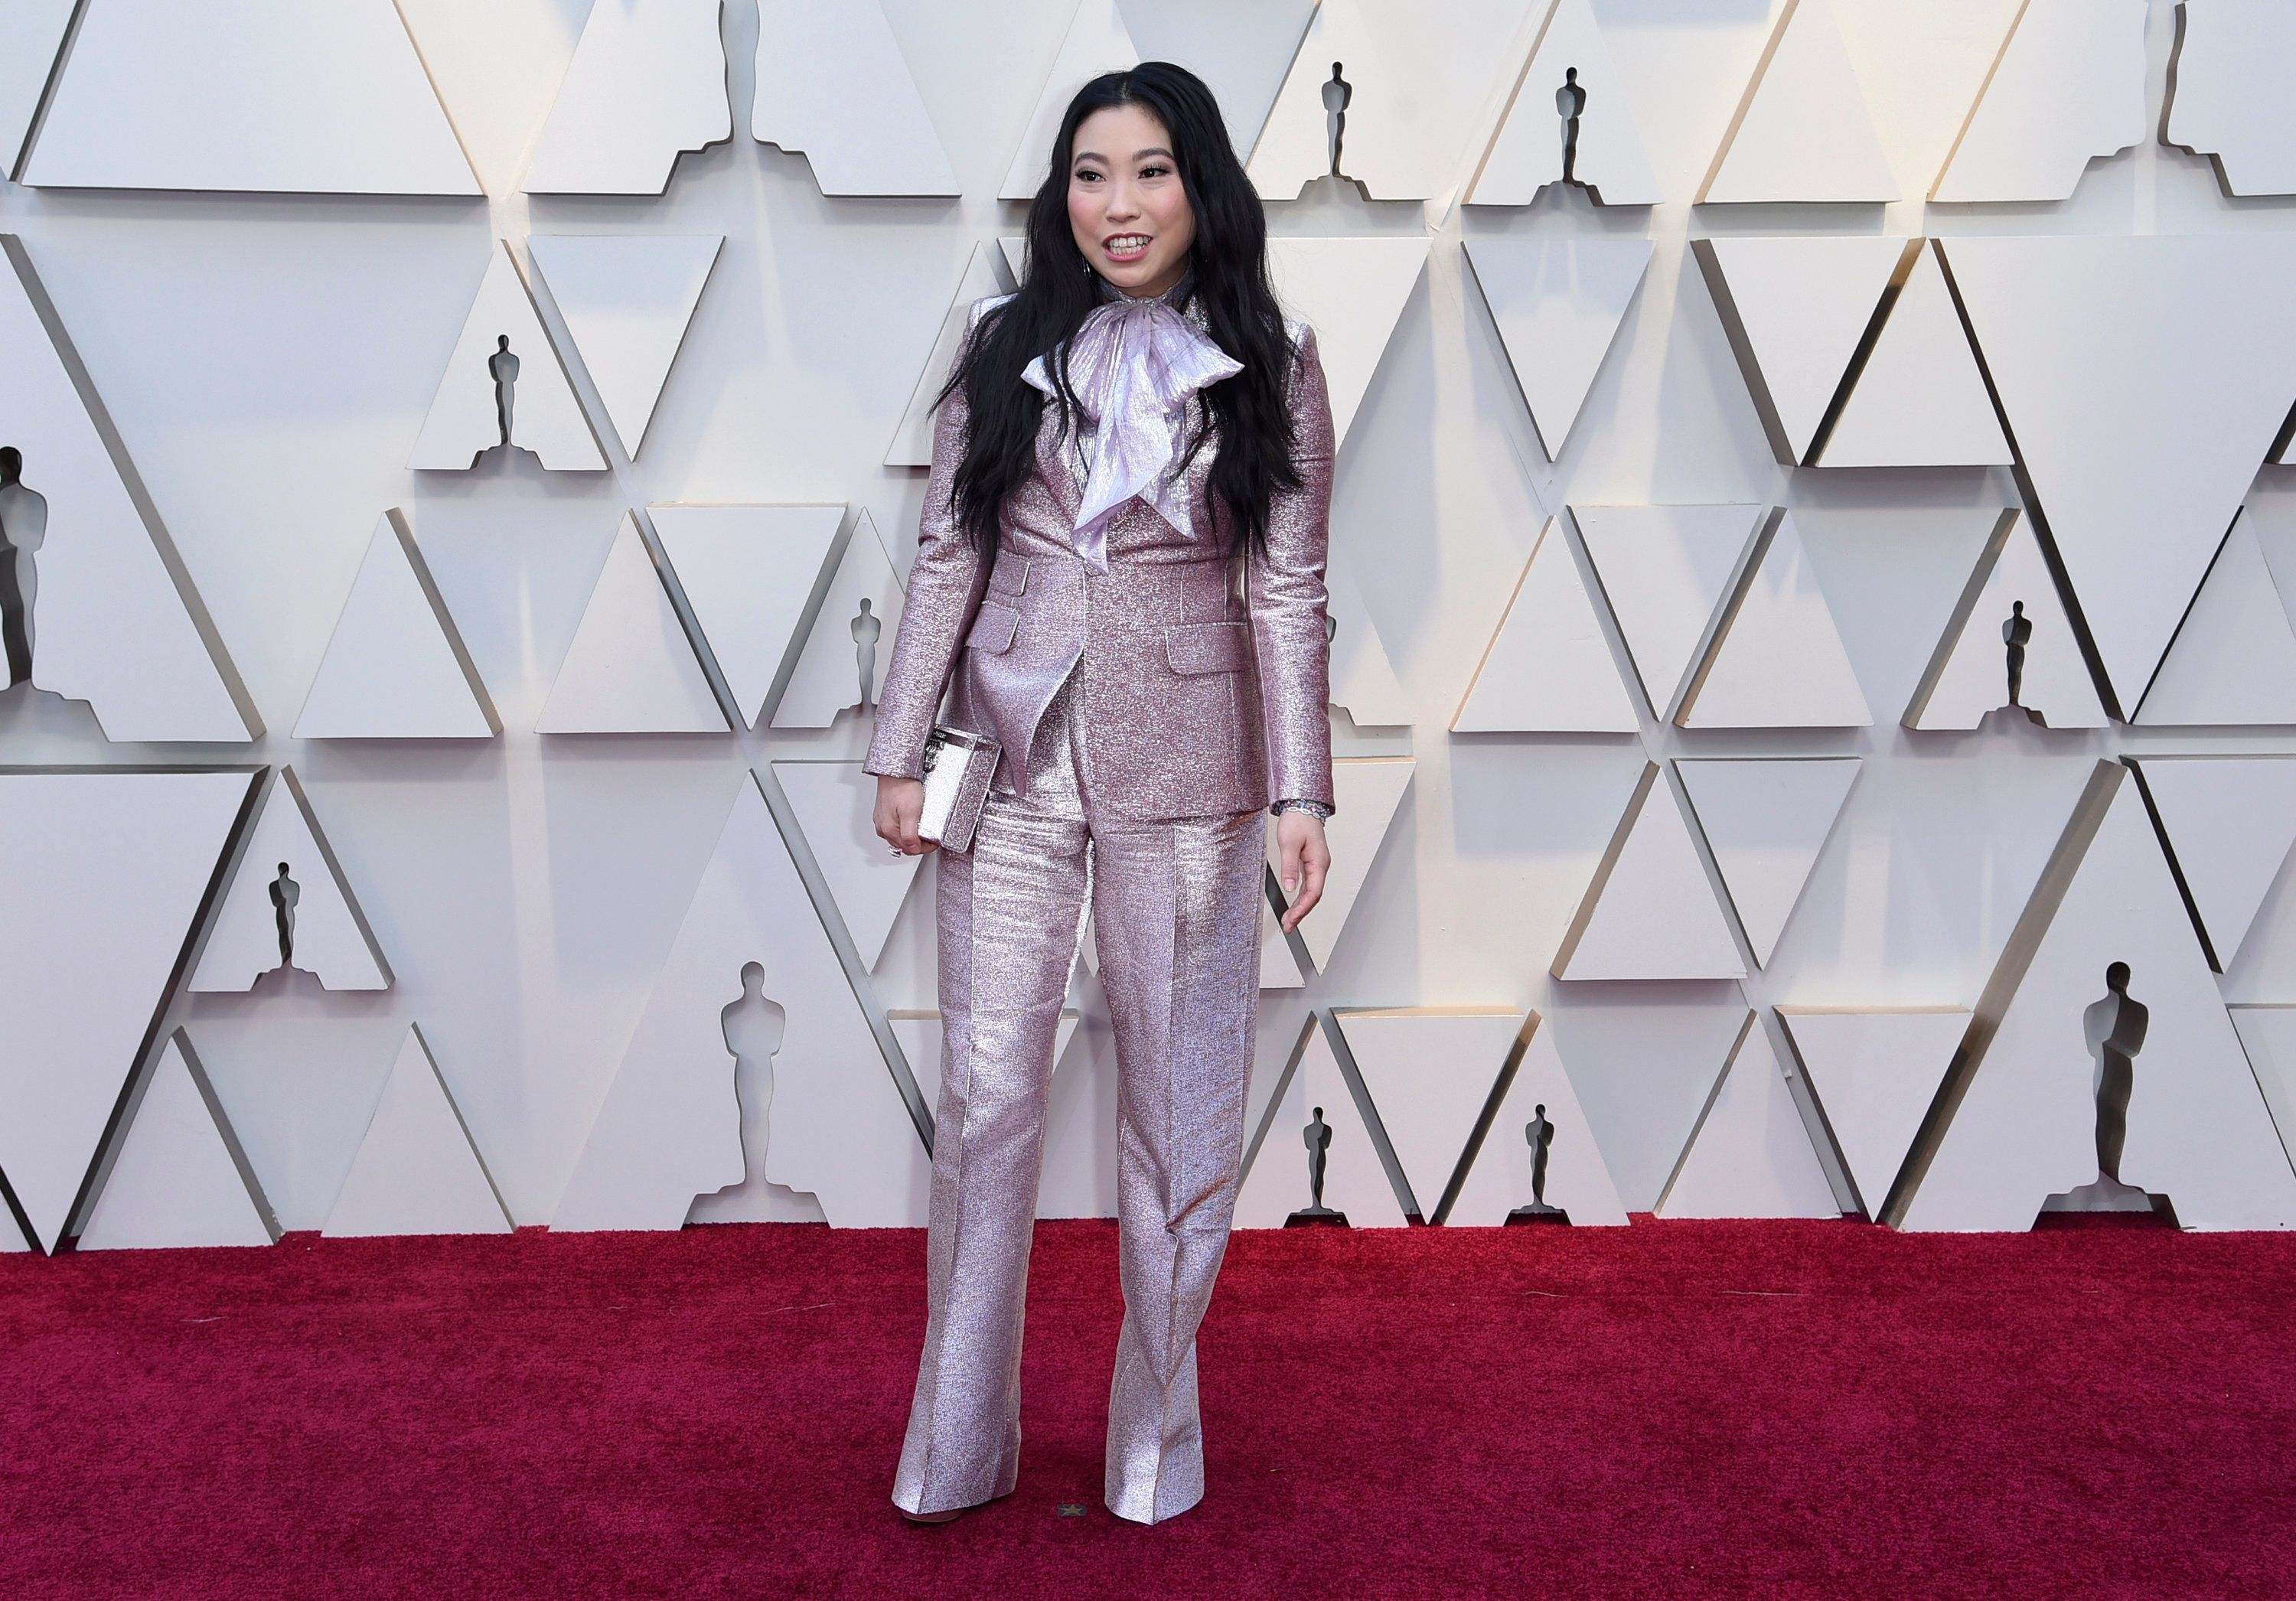 Awkwafina arrives at the Oscars on Sunday, Feb. 24, 2019, at the Dolby Theatre in Los Angeles. (Photo by Richard Shotwell/Invision/AP)